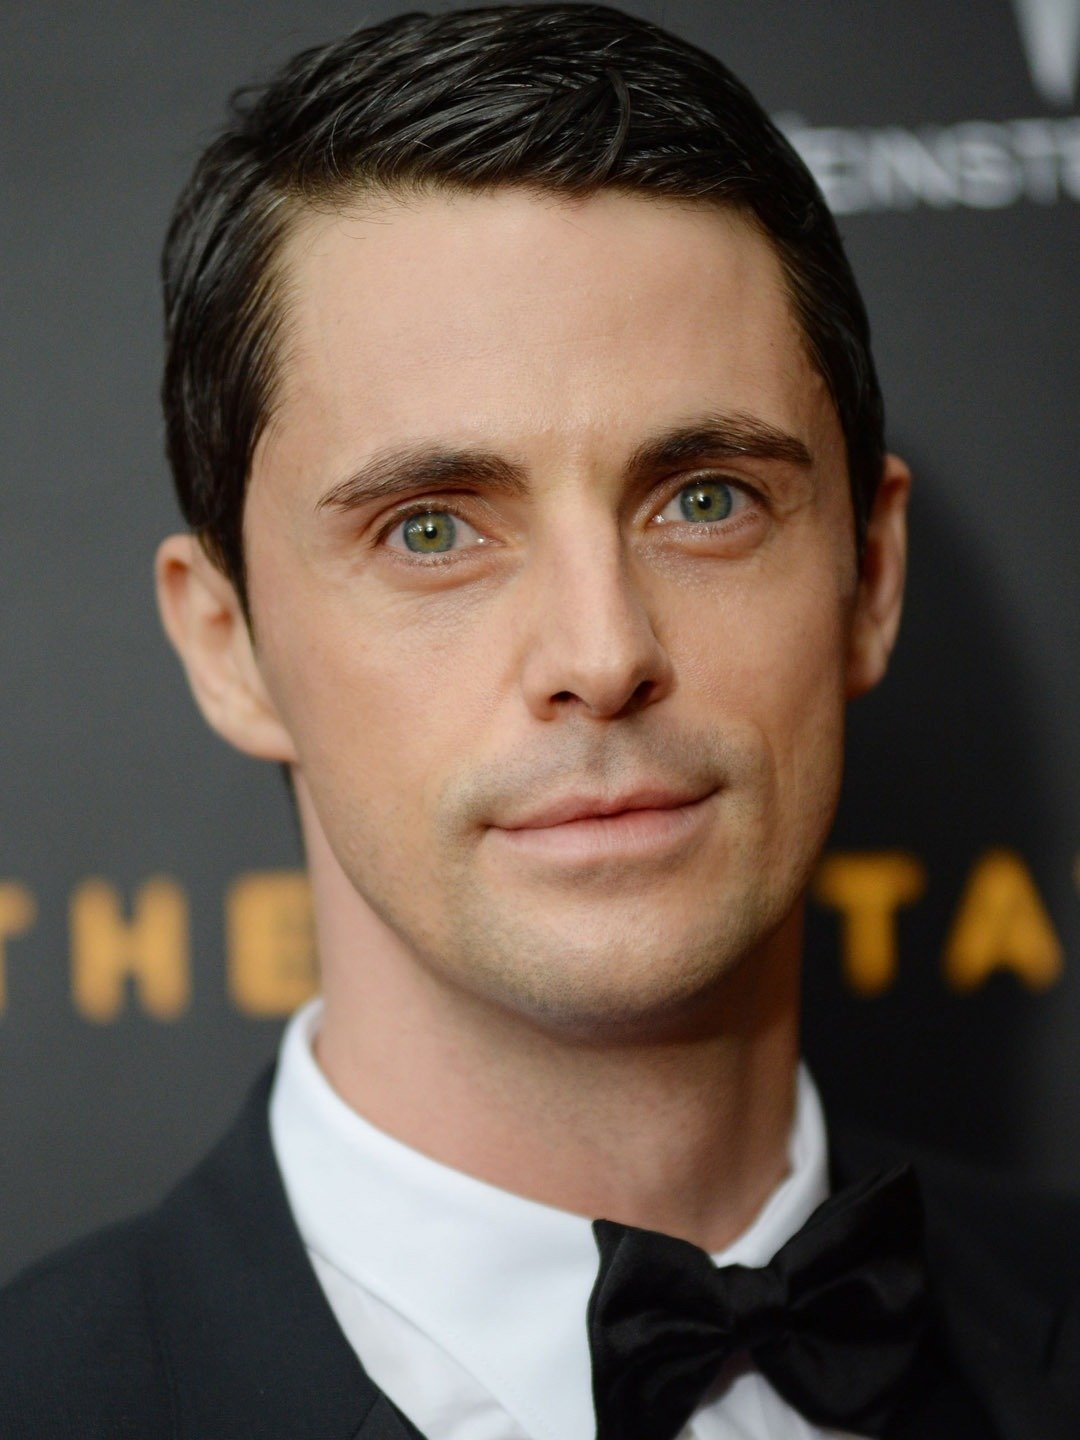 Forum on this topic: Barbara Livi, matthew-goode-born-1978/